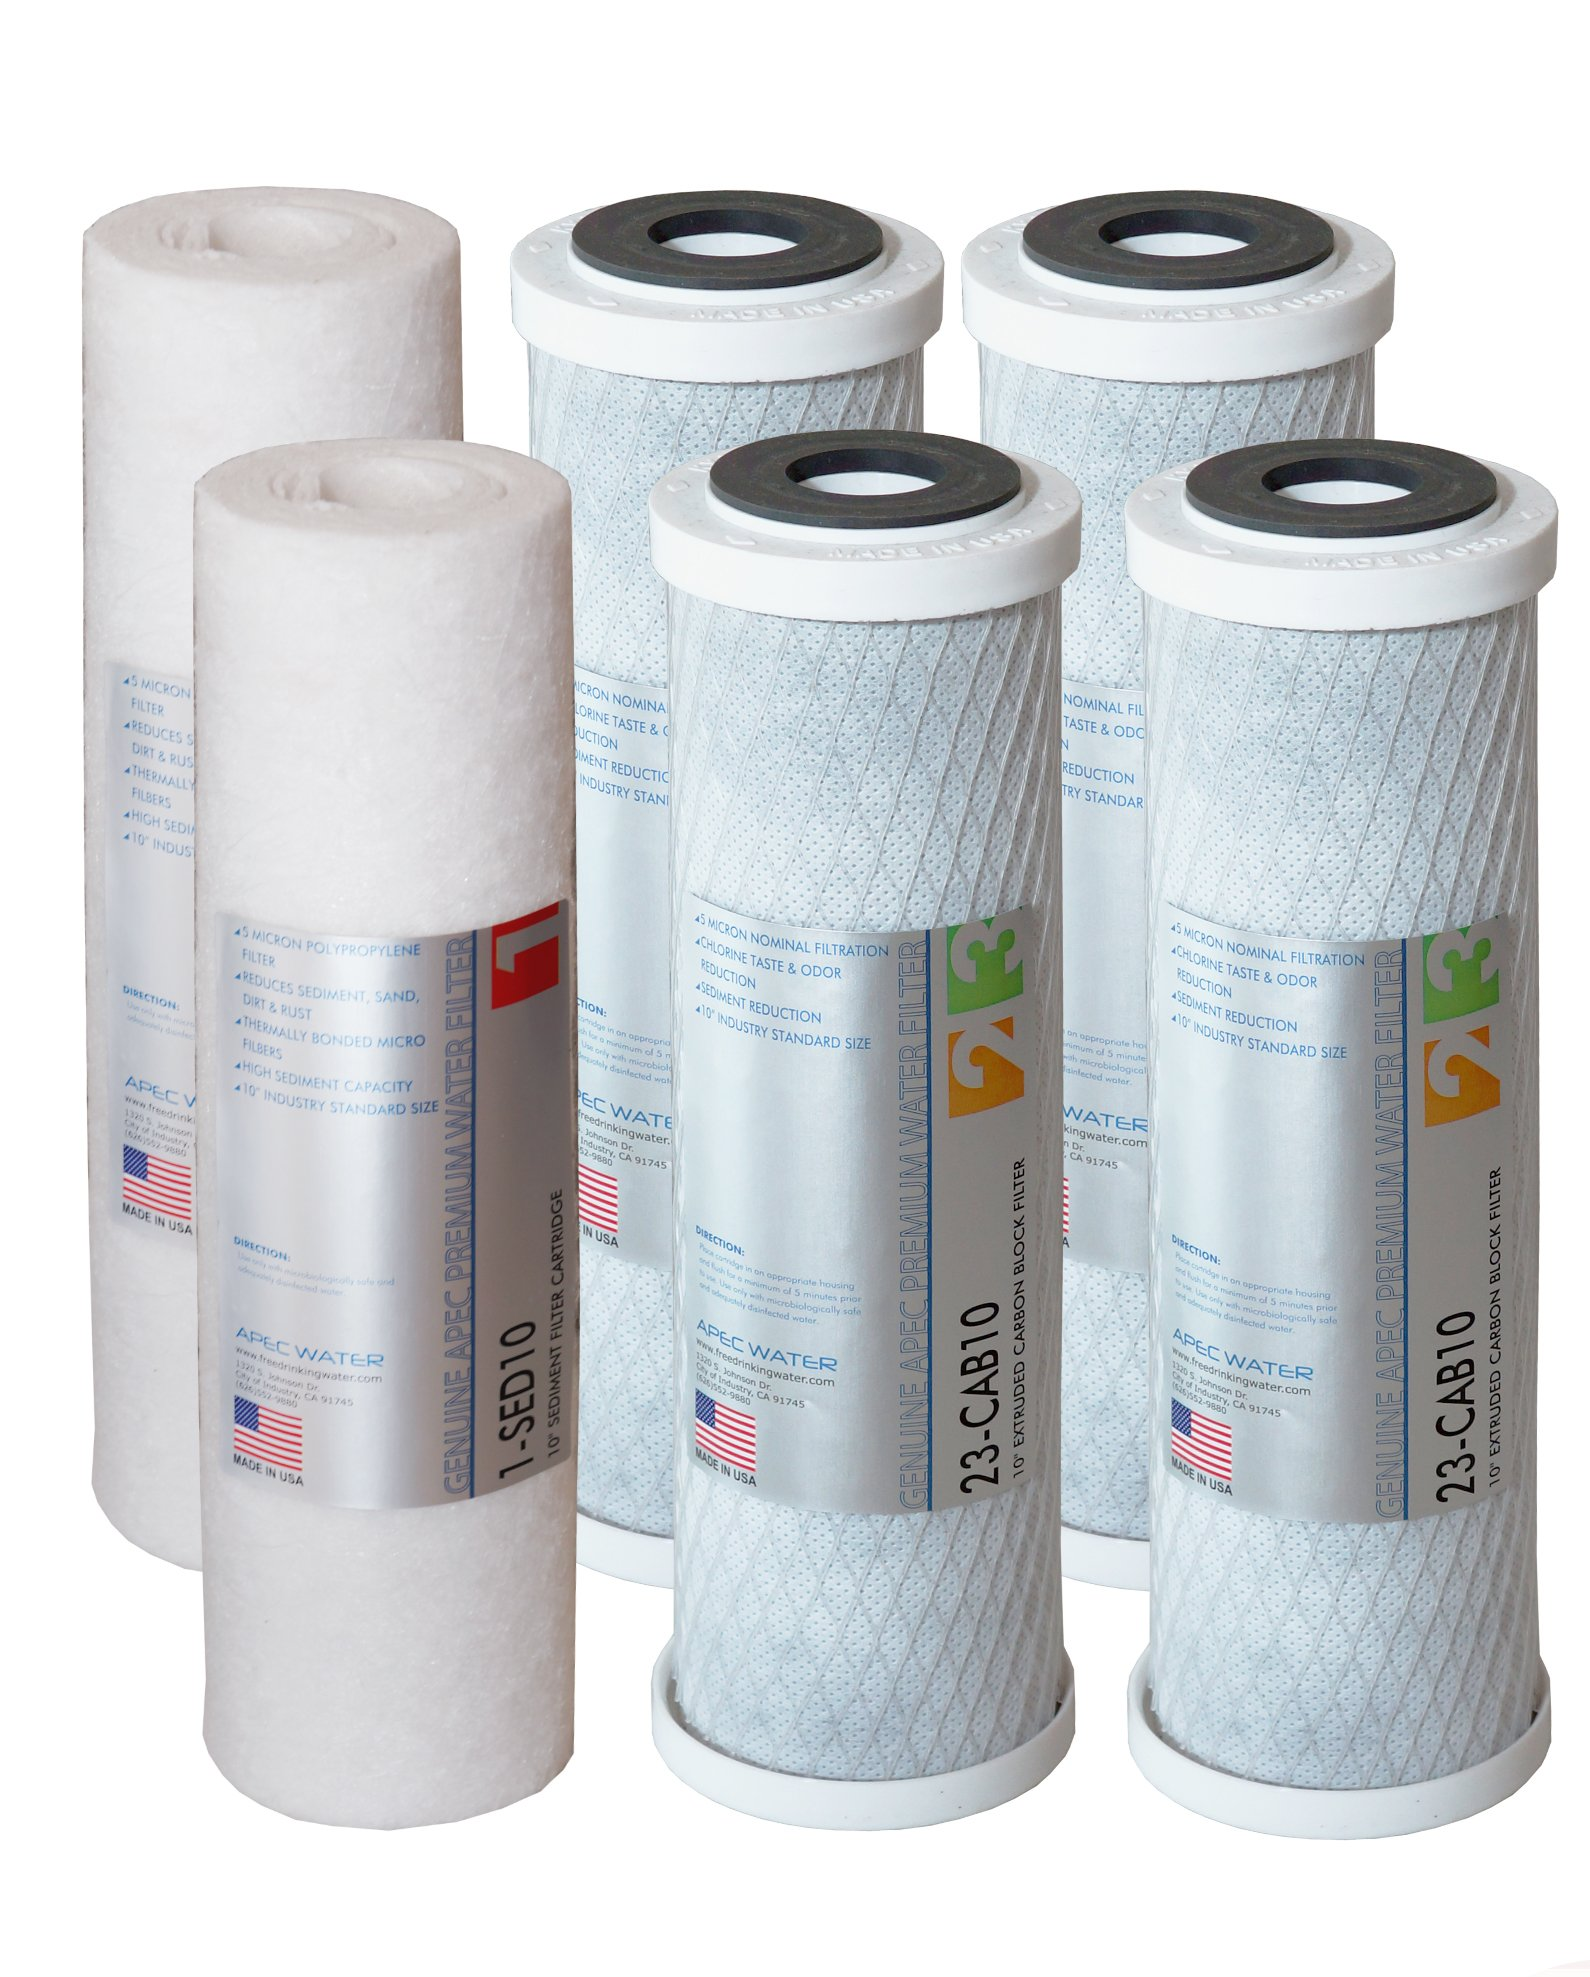 APEC FILTER-SETX2 US MADE 2 Sets of Double Capacity Replacement Pre-Filter Set For ULTIMATE Series Reverse Osmosis Water Filter System Stage 1, 2&3, pack of 2 sediment and 4 carbon black Filters